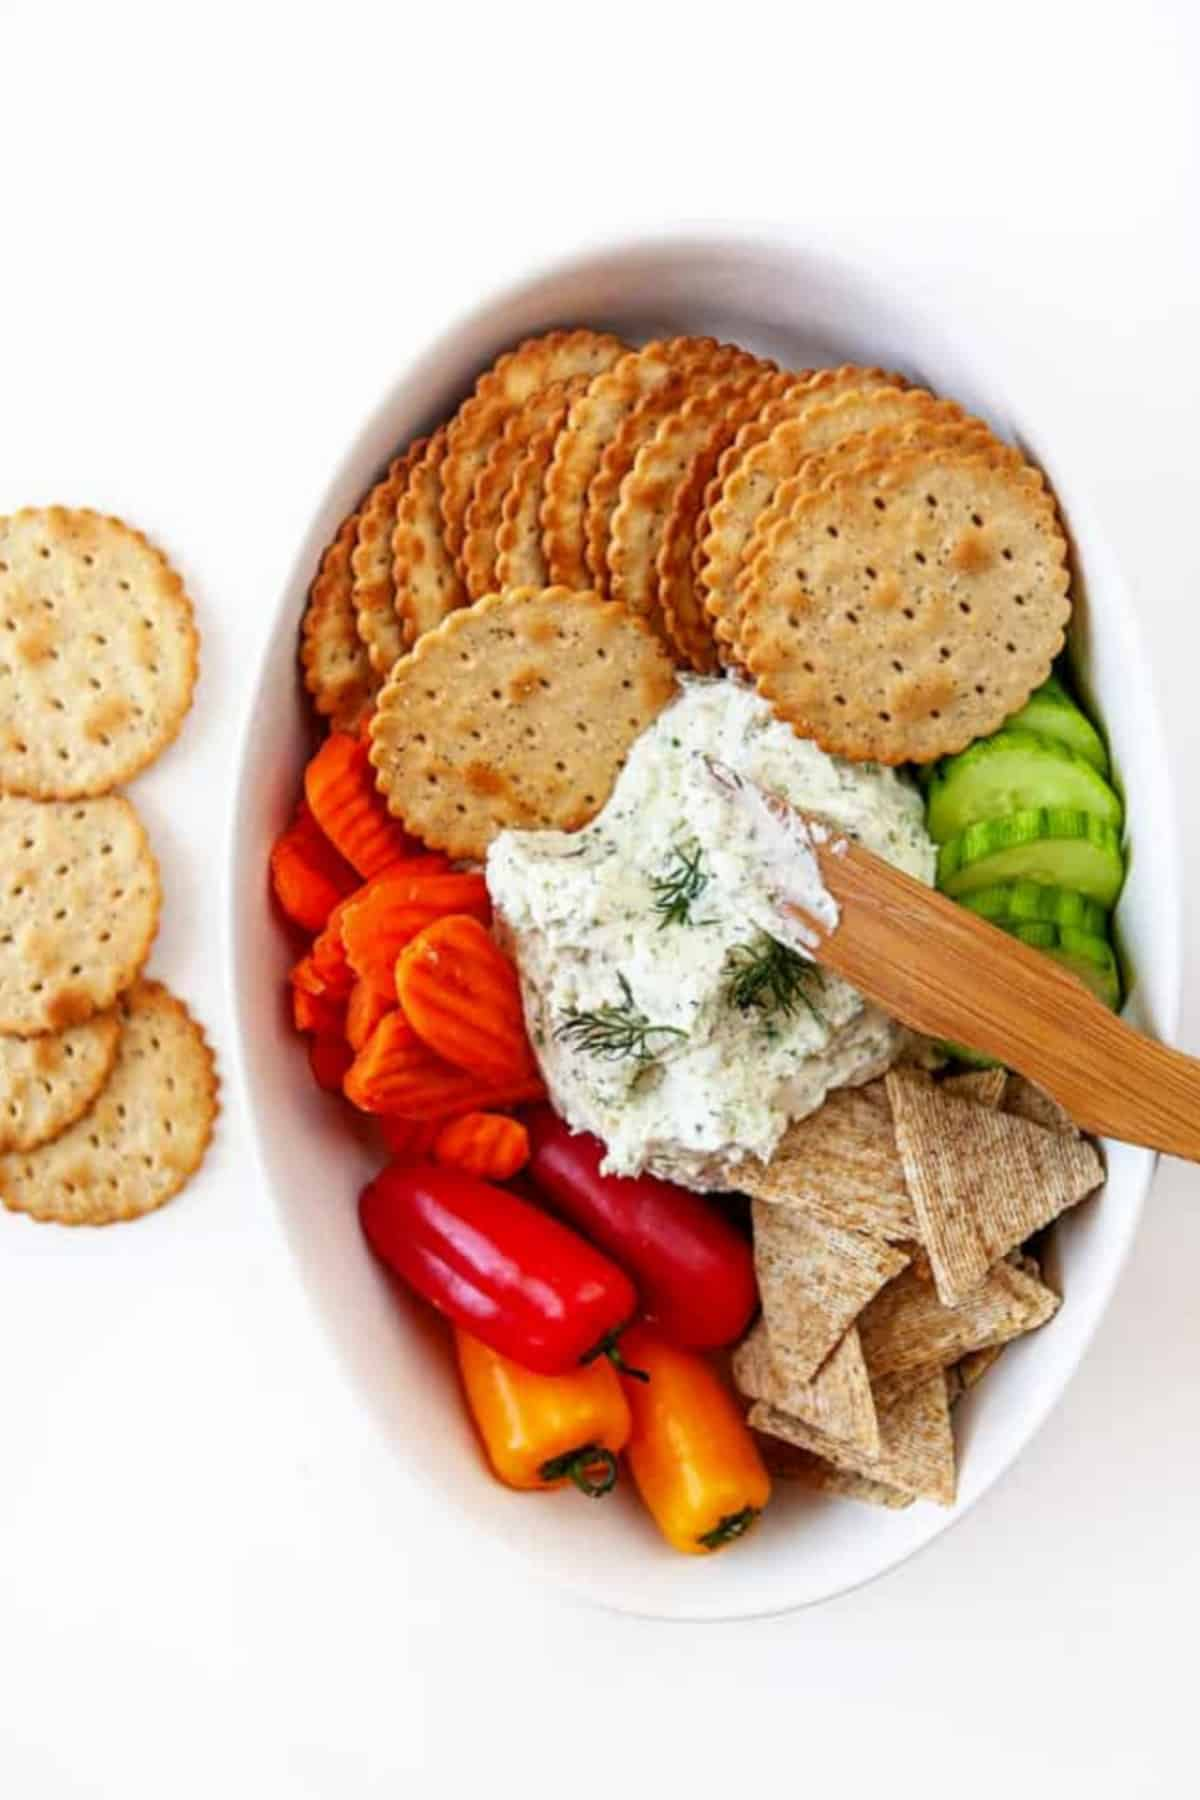 Boursin cheese recipe with veggie and cracker dippers